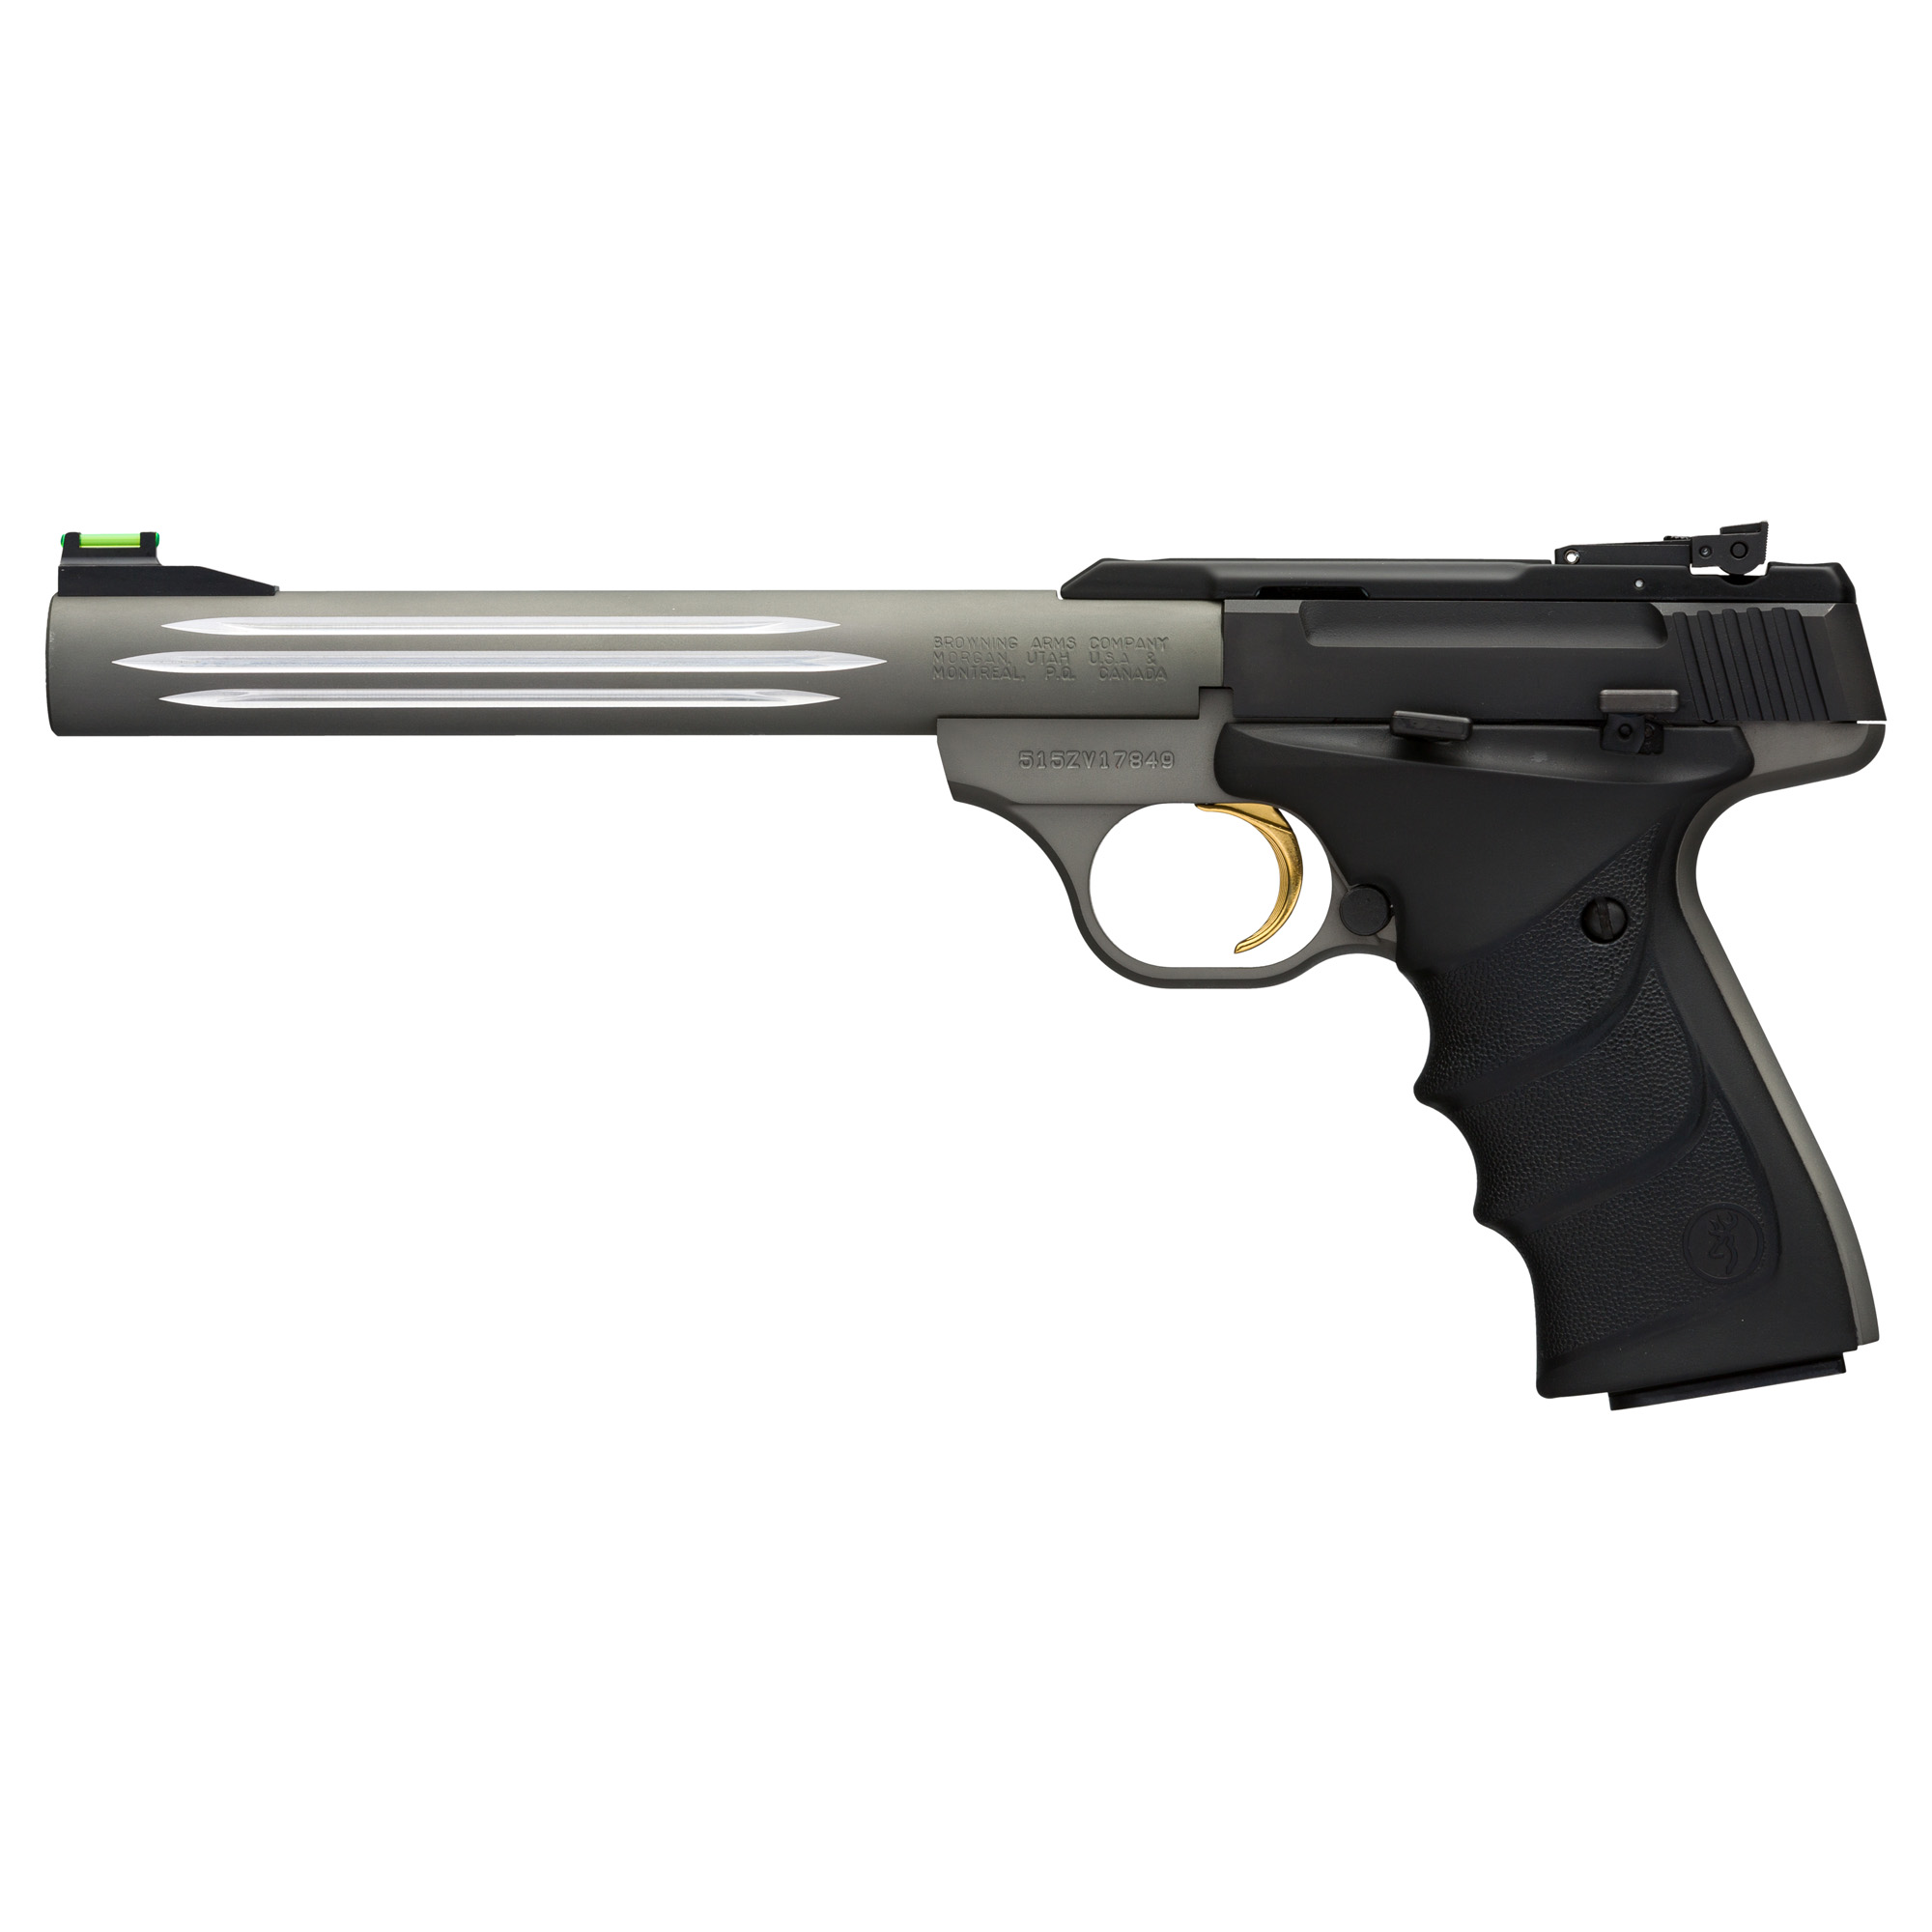 "Brown Bm Lite Gray Urx 22lr 7.25"" Bl"